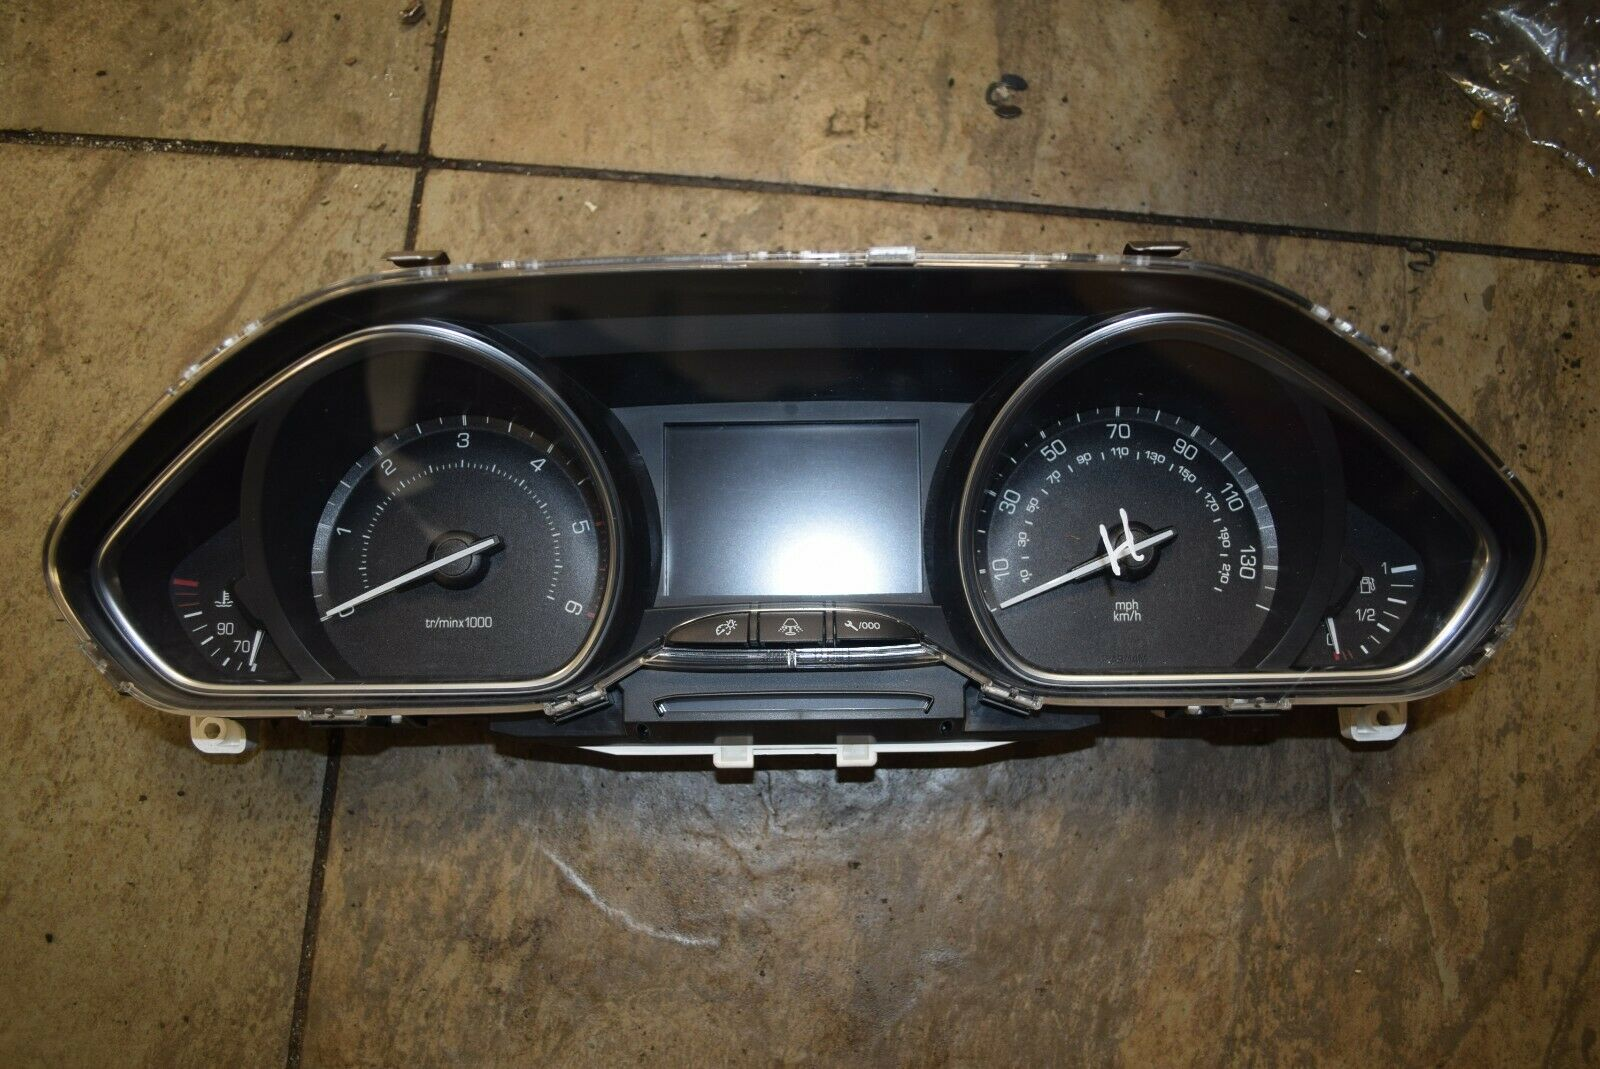 2013 PEUGEOT 2008 1.6 HDI INSTRUMENT CLUSTER 9805341480 (L3-6)